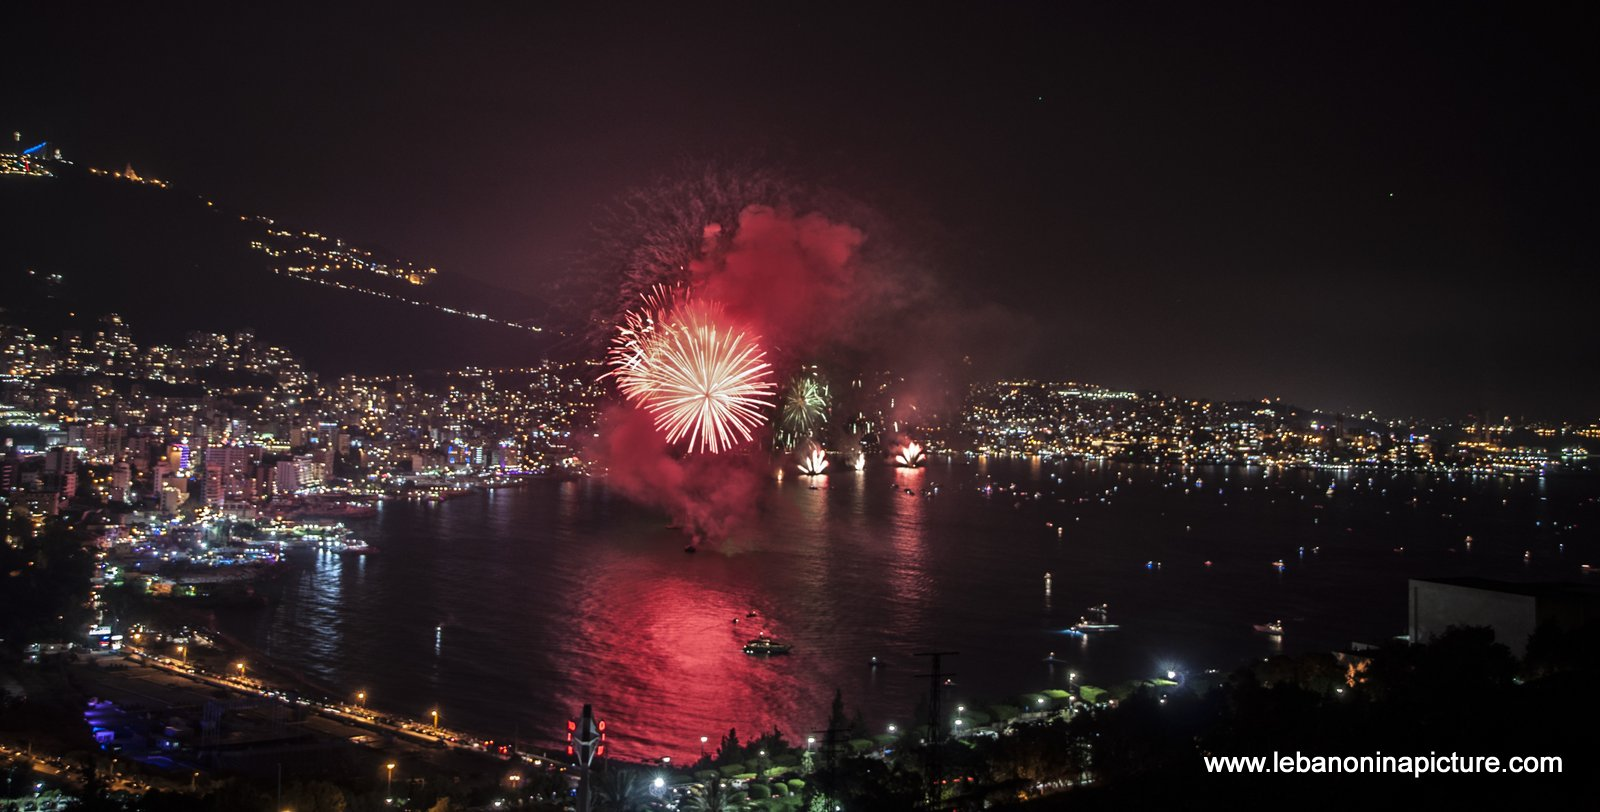 Jounieh Fireworks 2017 - The Smoke is Coming